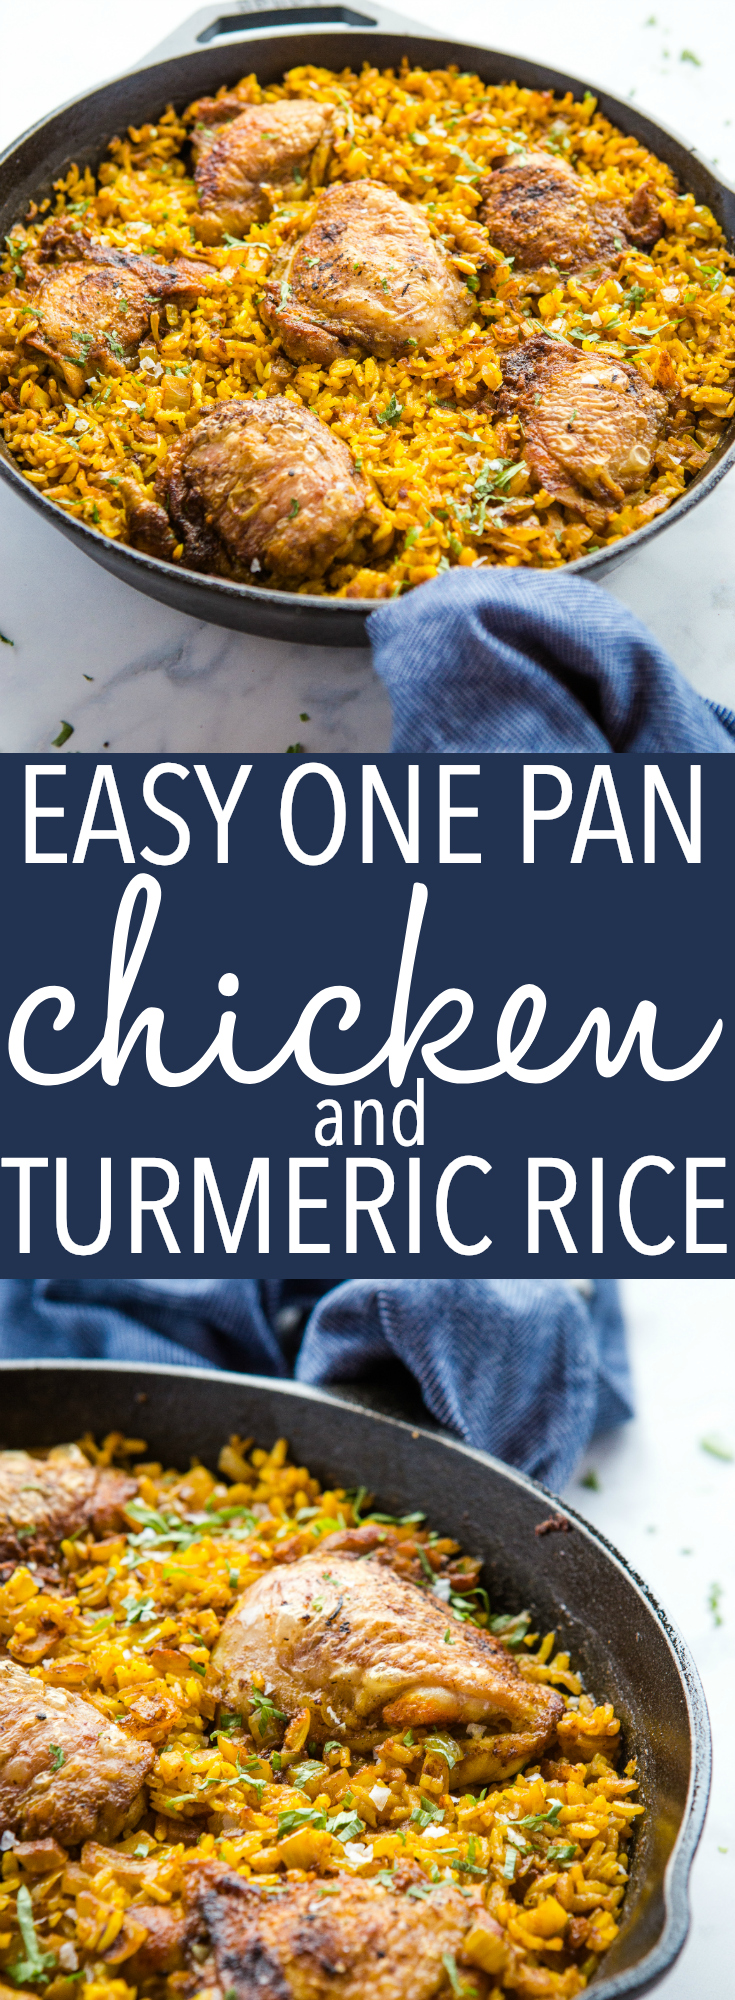 This Easy One Pan Chicken with Turmeric Rice is the perfect super easy weeknight dinner! It's family-friendly and on the table in 30 minutes! Recipe from thebusybaker.ca! #rice #turmeric #healthy #chicken #lodgecastiron #onepan #meal #weeknight #dinner #chickenandrice via @busybakerblog